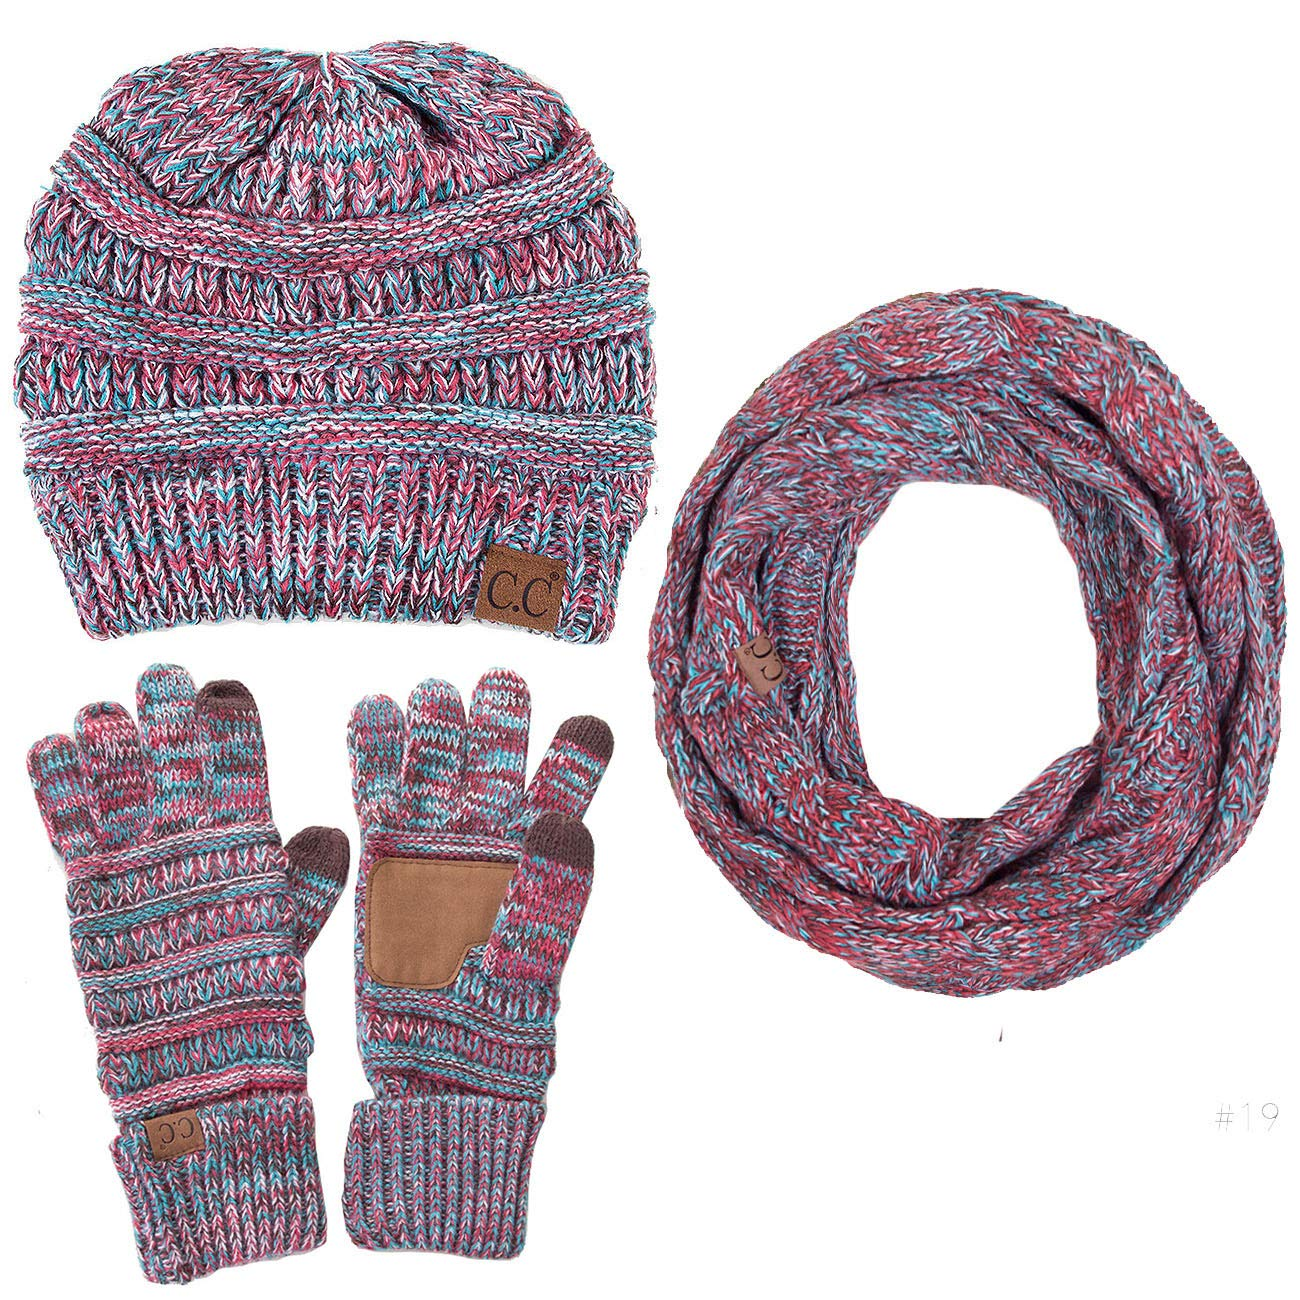 ScarvesMe 3pc Multi Tone Trendy Warm Chunky Soft Stretch Cable Knit Beanie, Scarves and Gloves Set